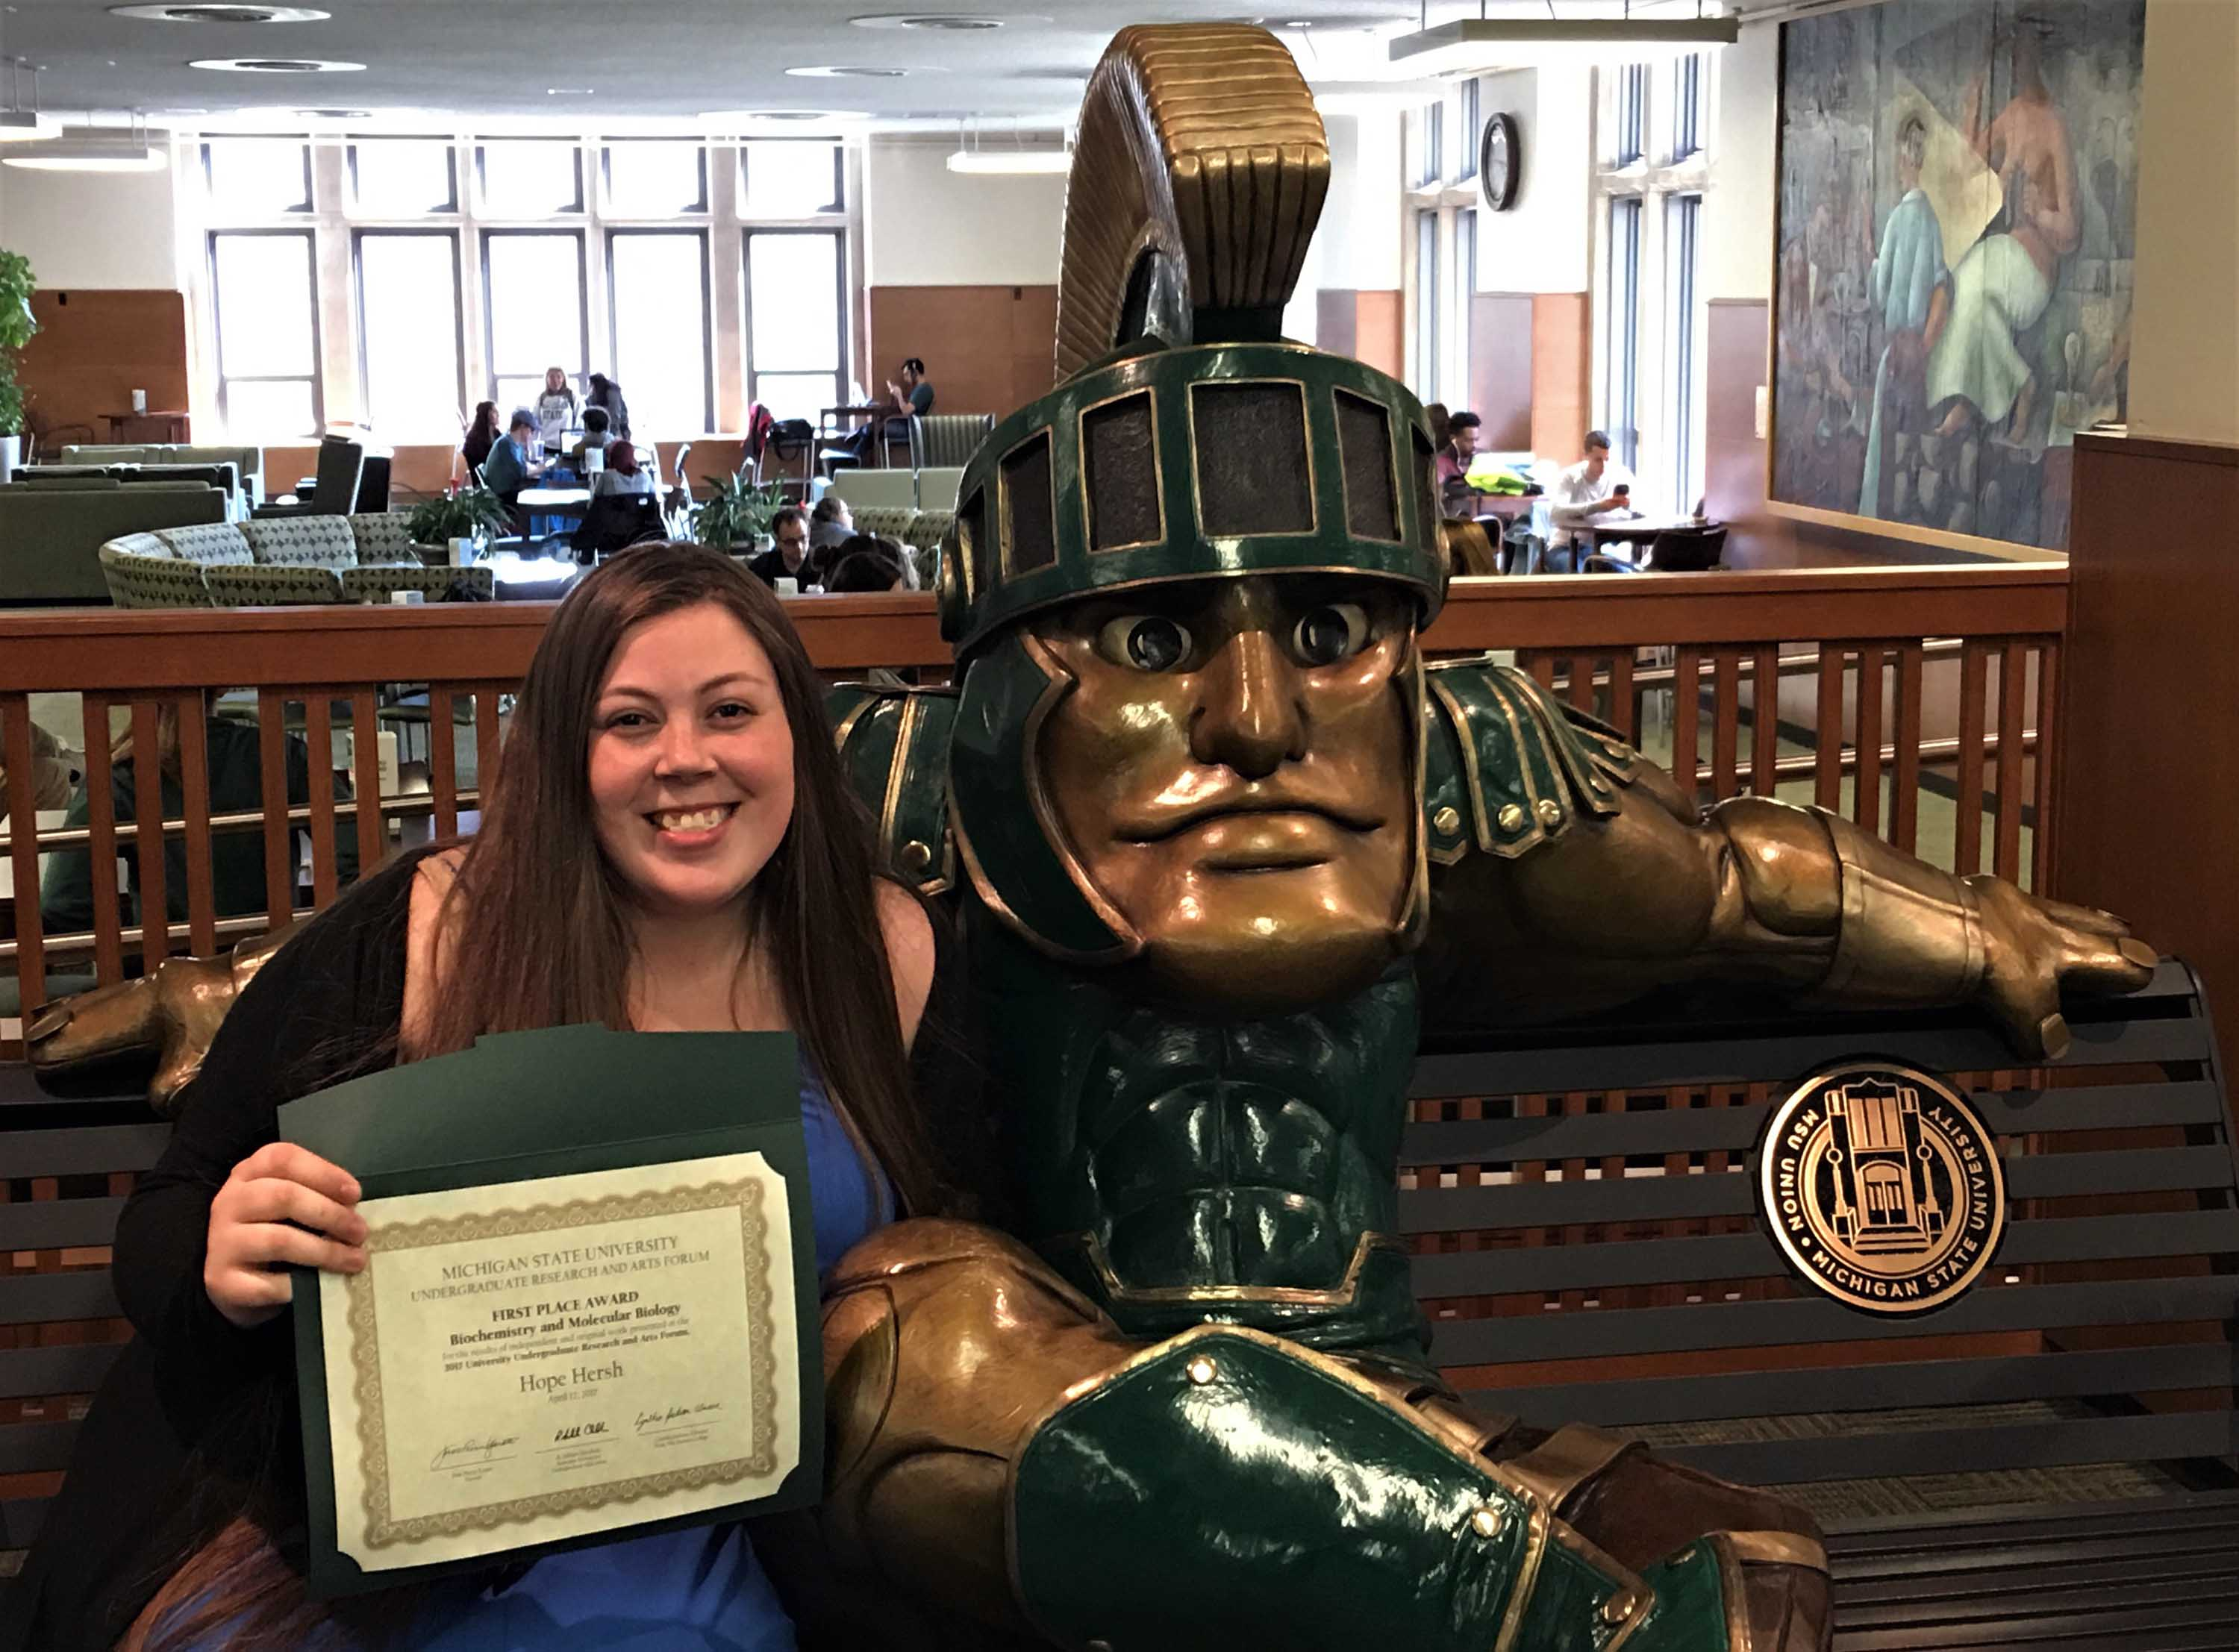 Hope with her award by Sparty statue